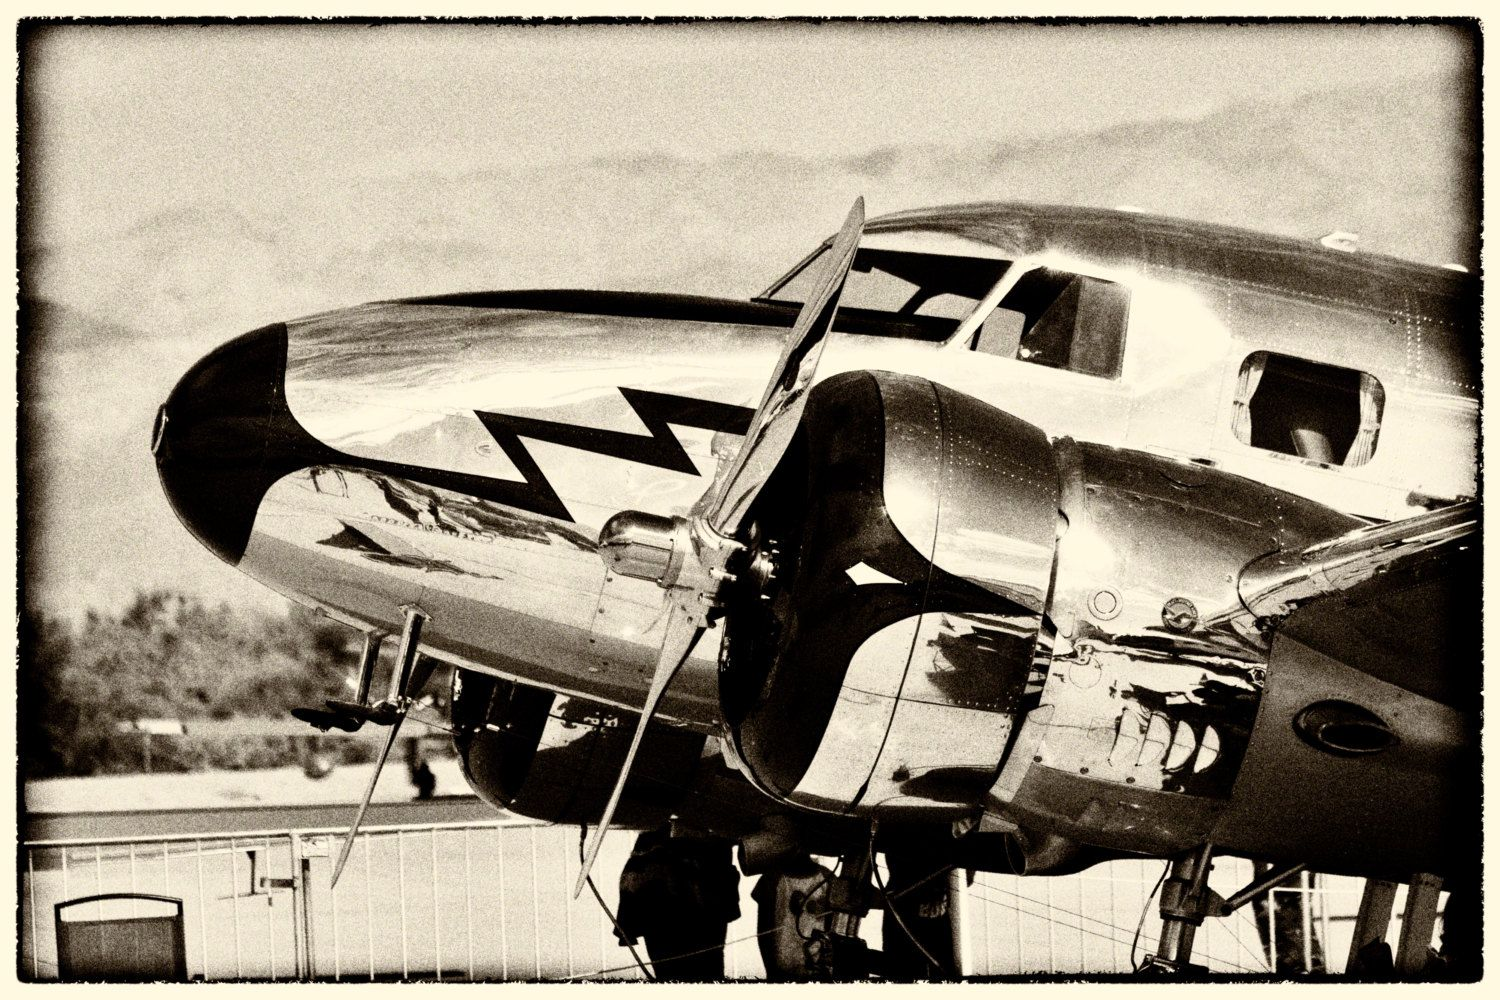 Old Metallic Airplane